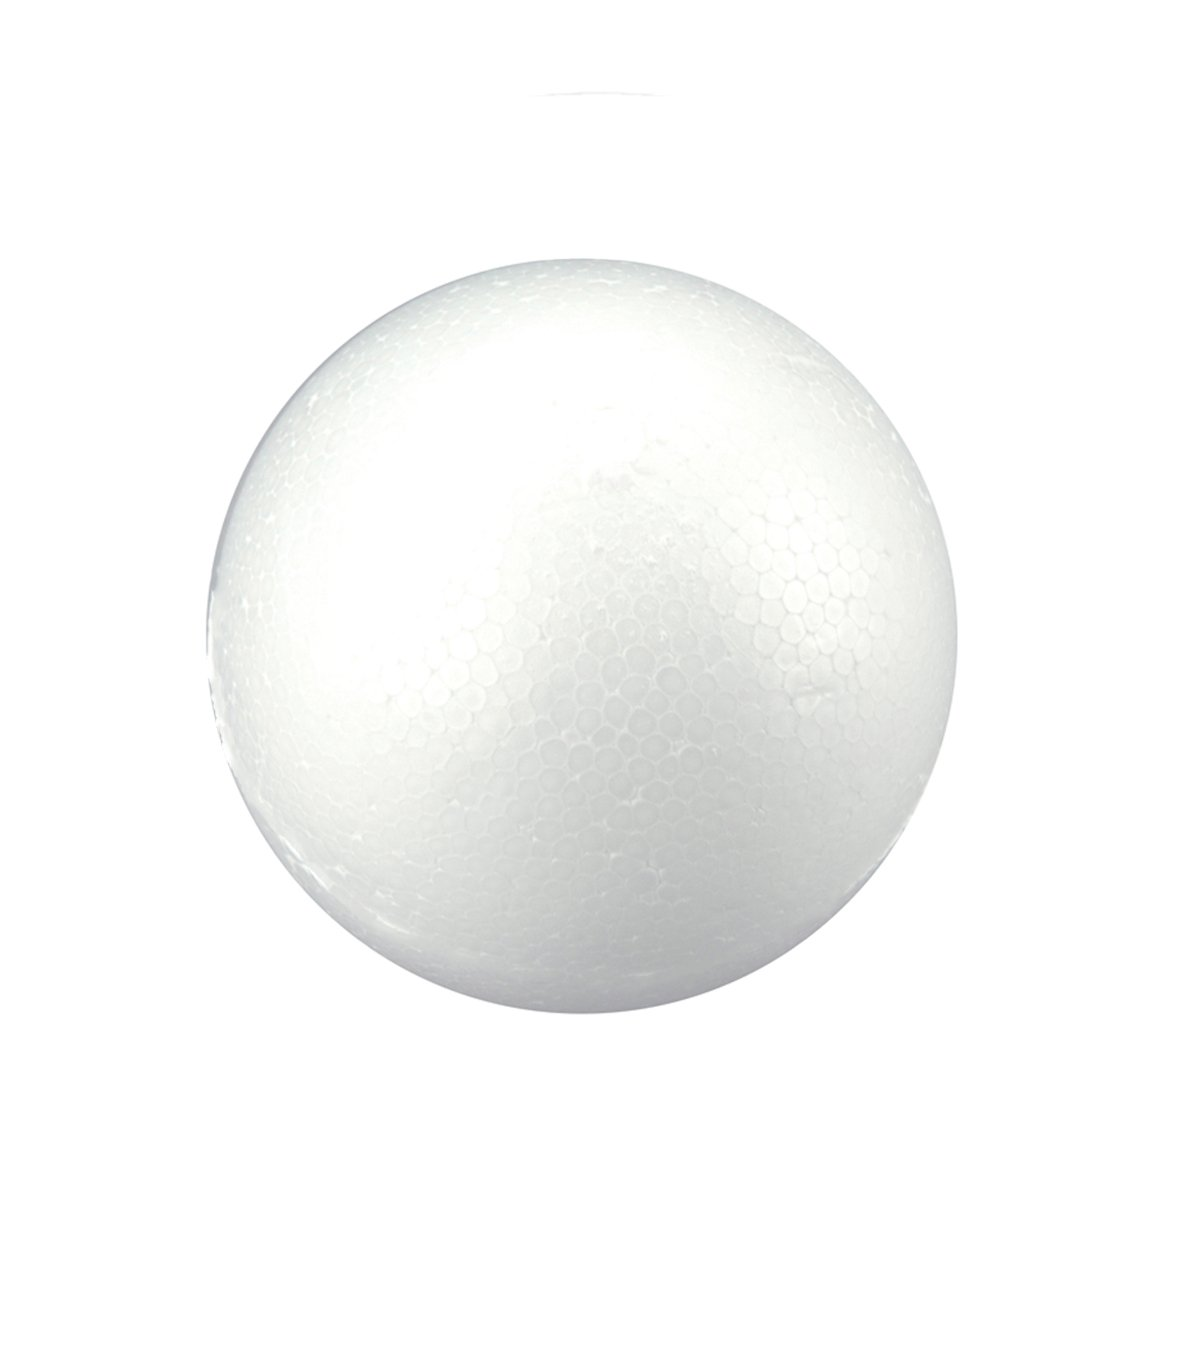 LA Crafts 6 Piece of 8'' Party Floral Decorations School Project Craft Projects Paint or Decorate Foam Balls